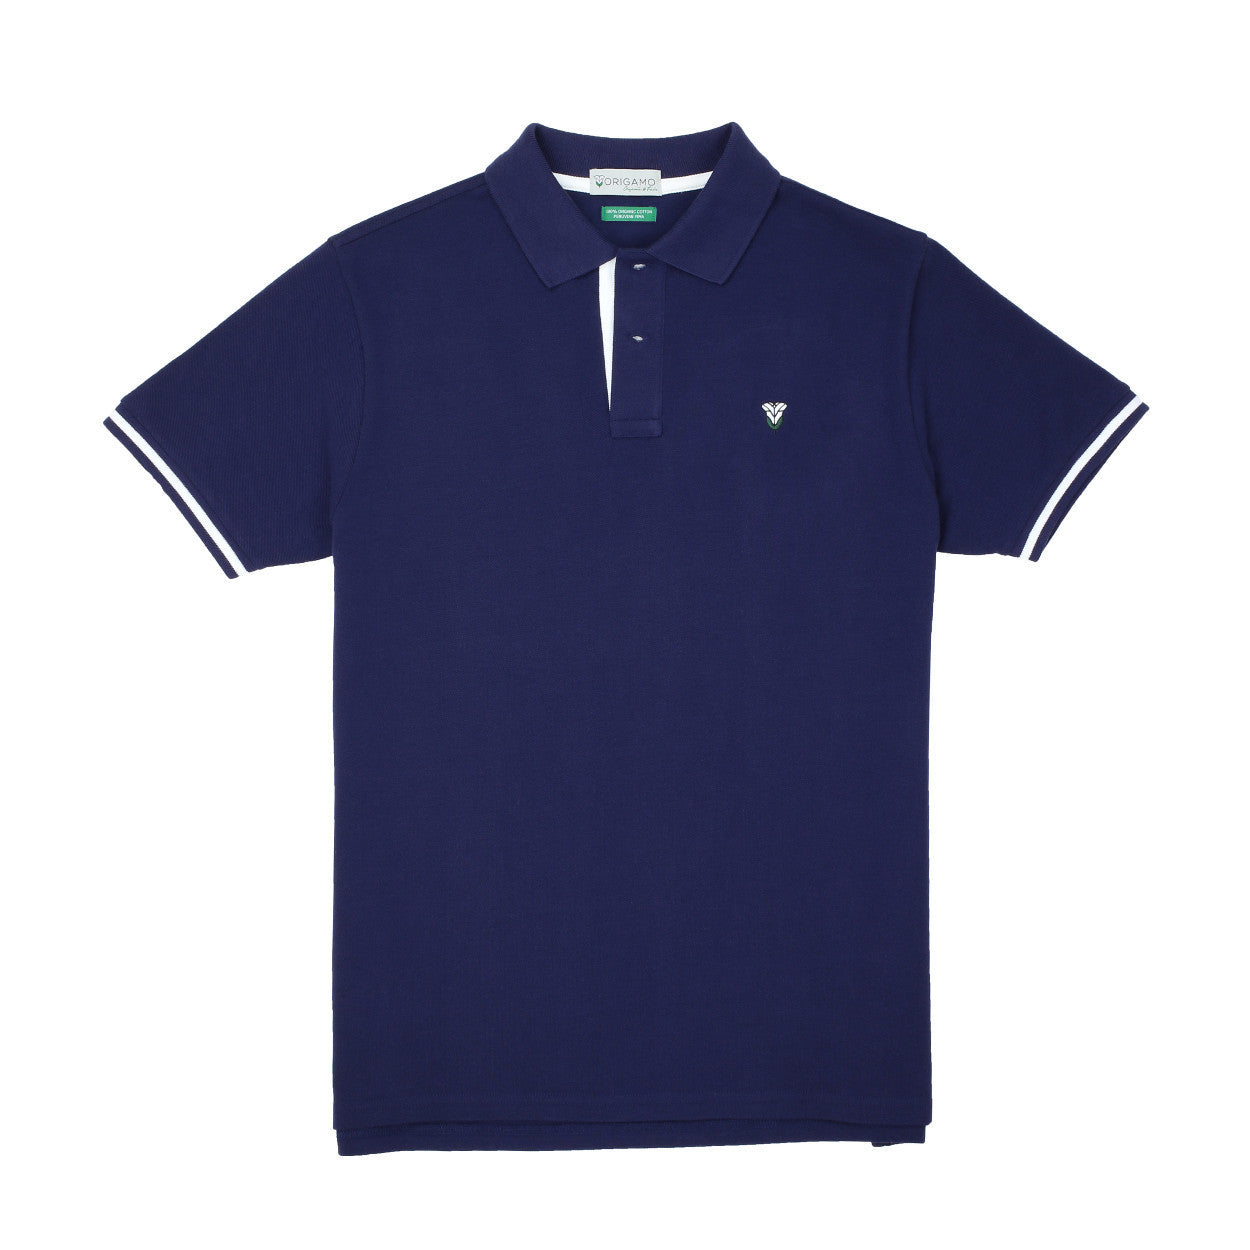 Pacific Polo Navy Contrast White </br>Double Pique - 100% Organic Pima Cotton